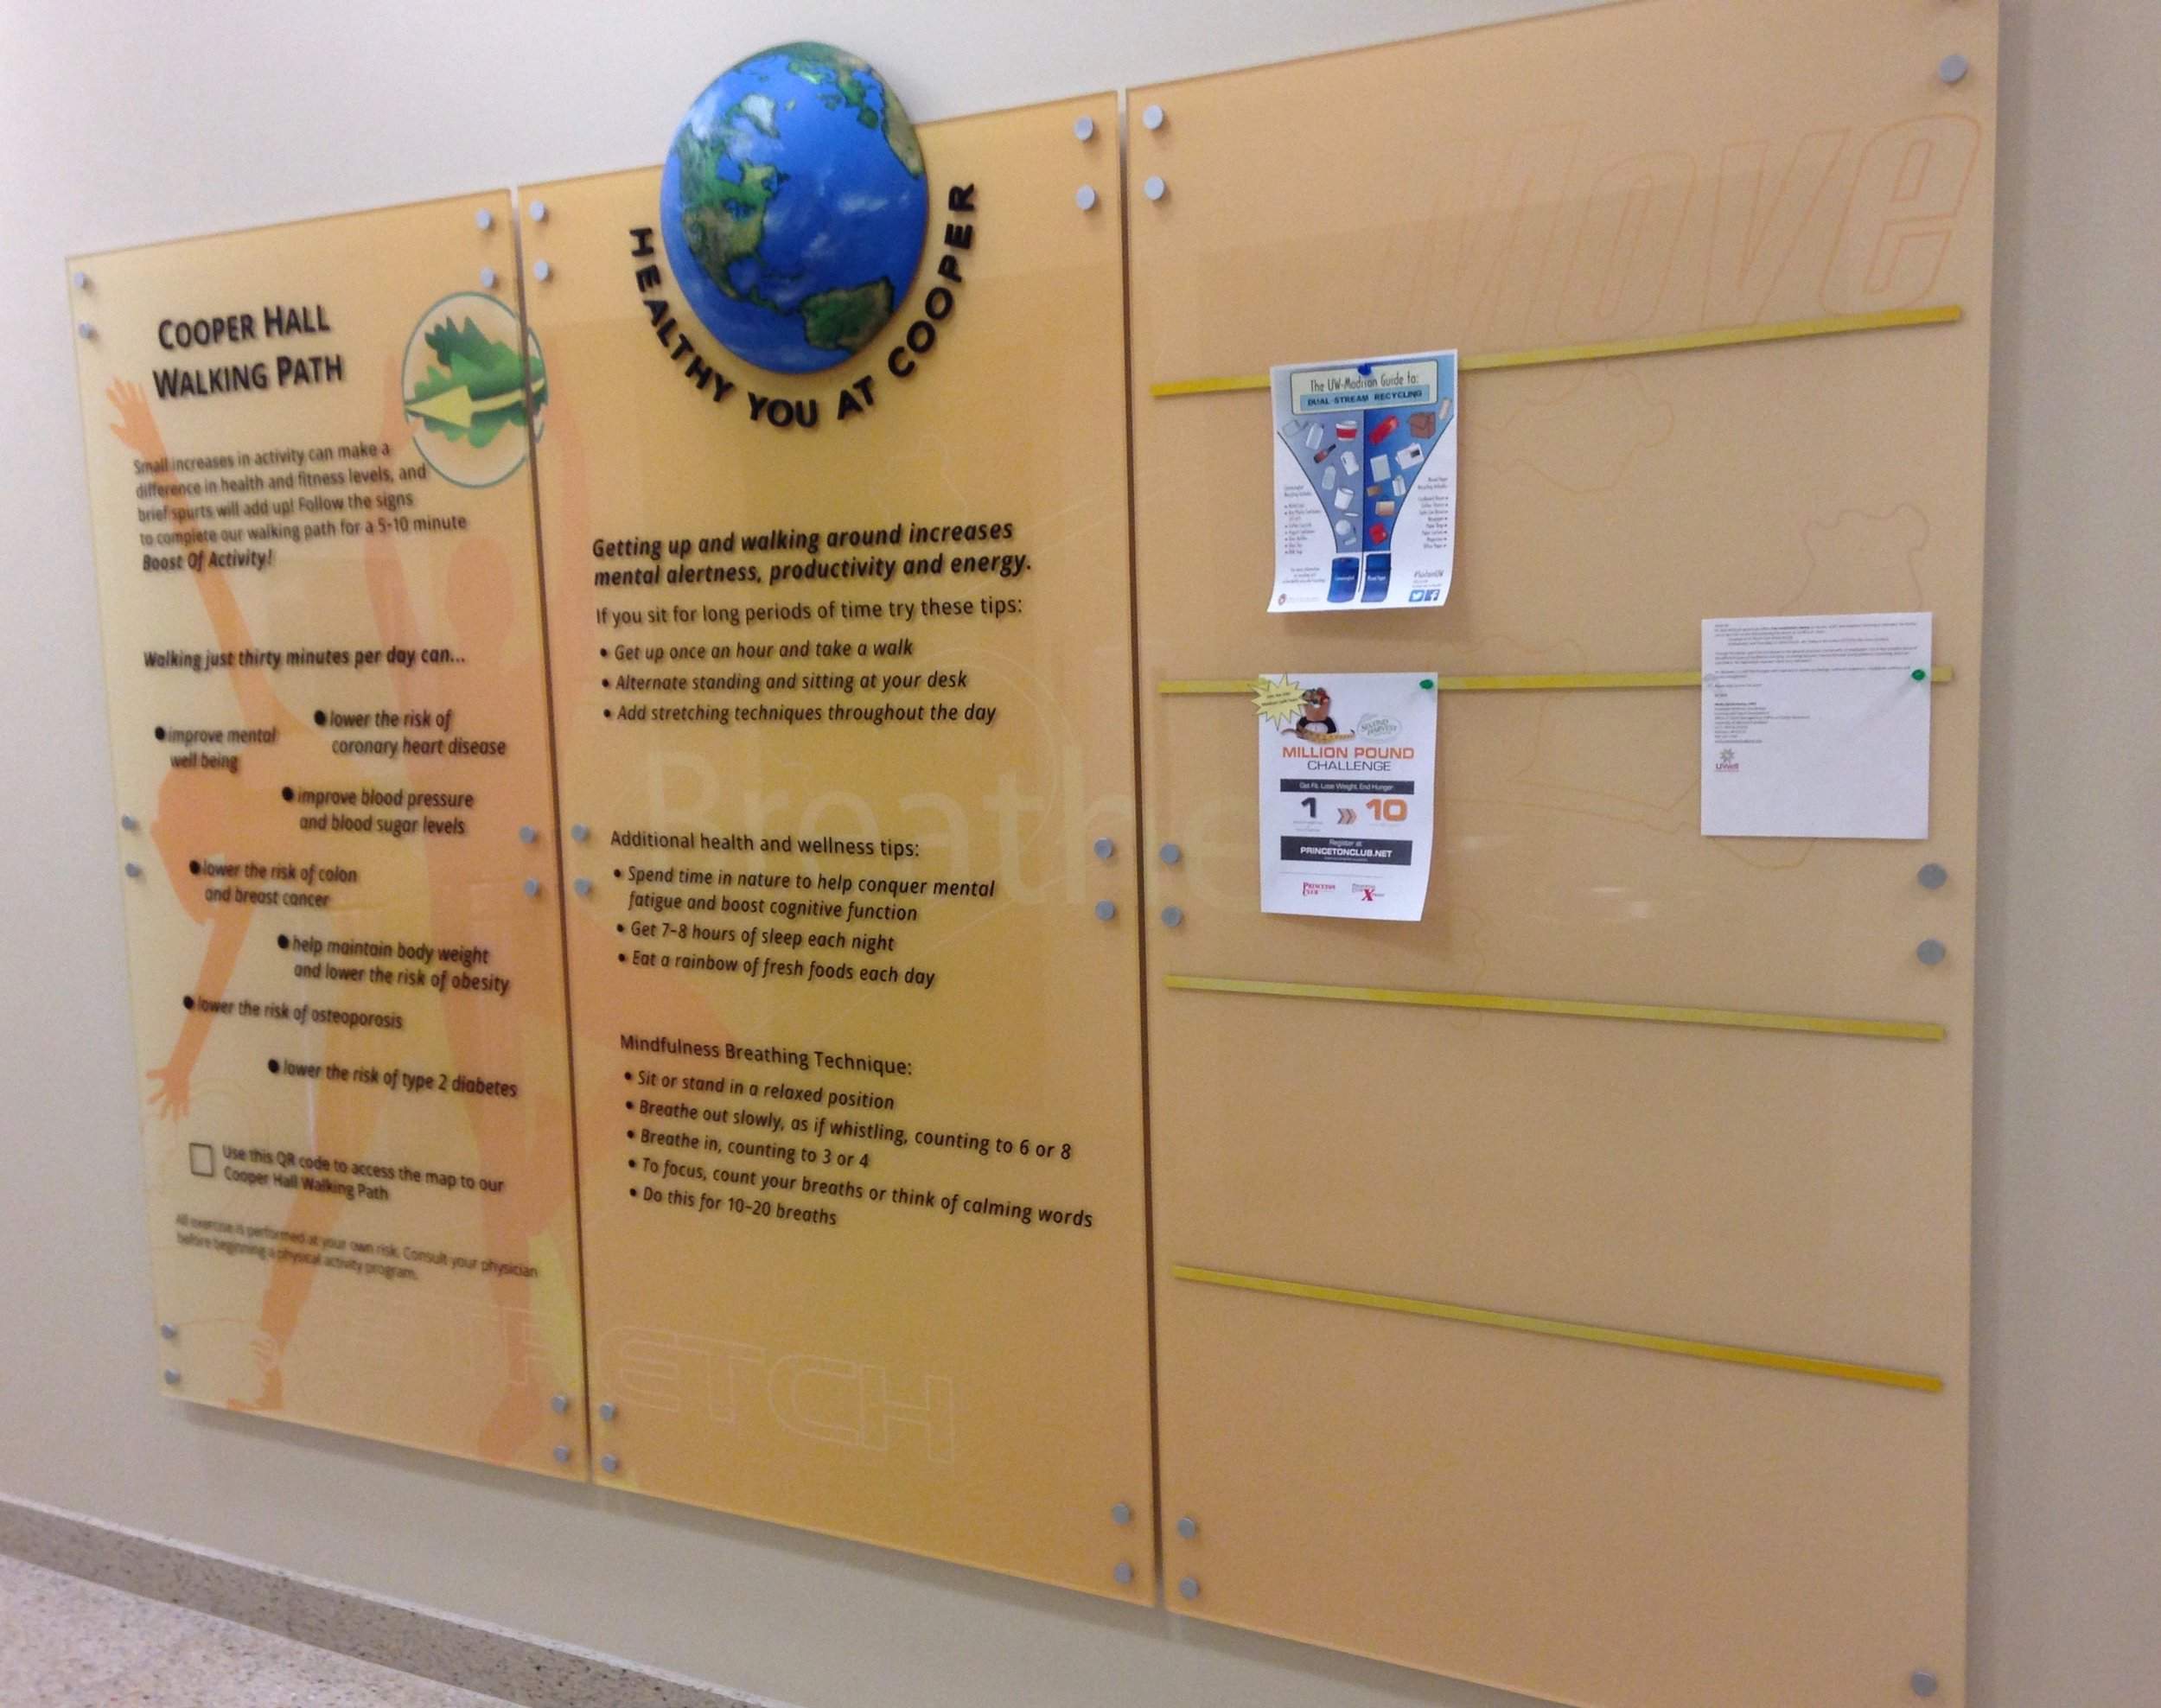 uw_nursing_globe_display2.jpg